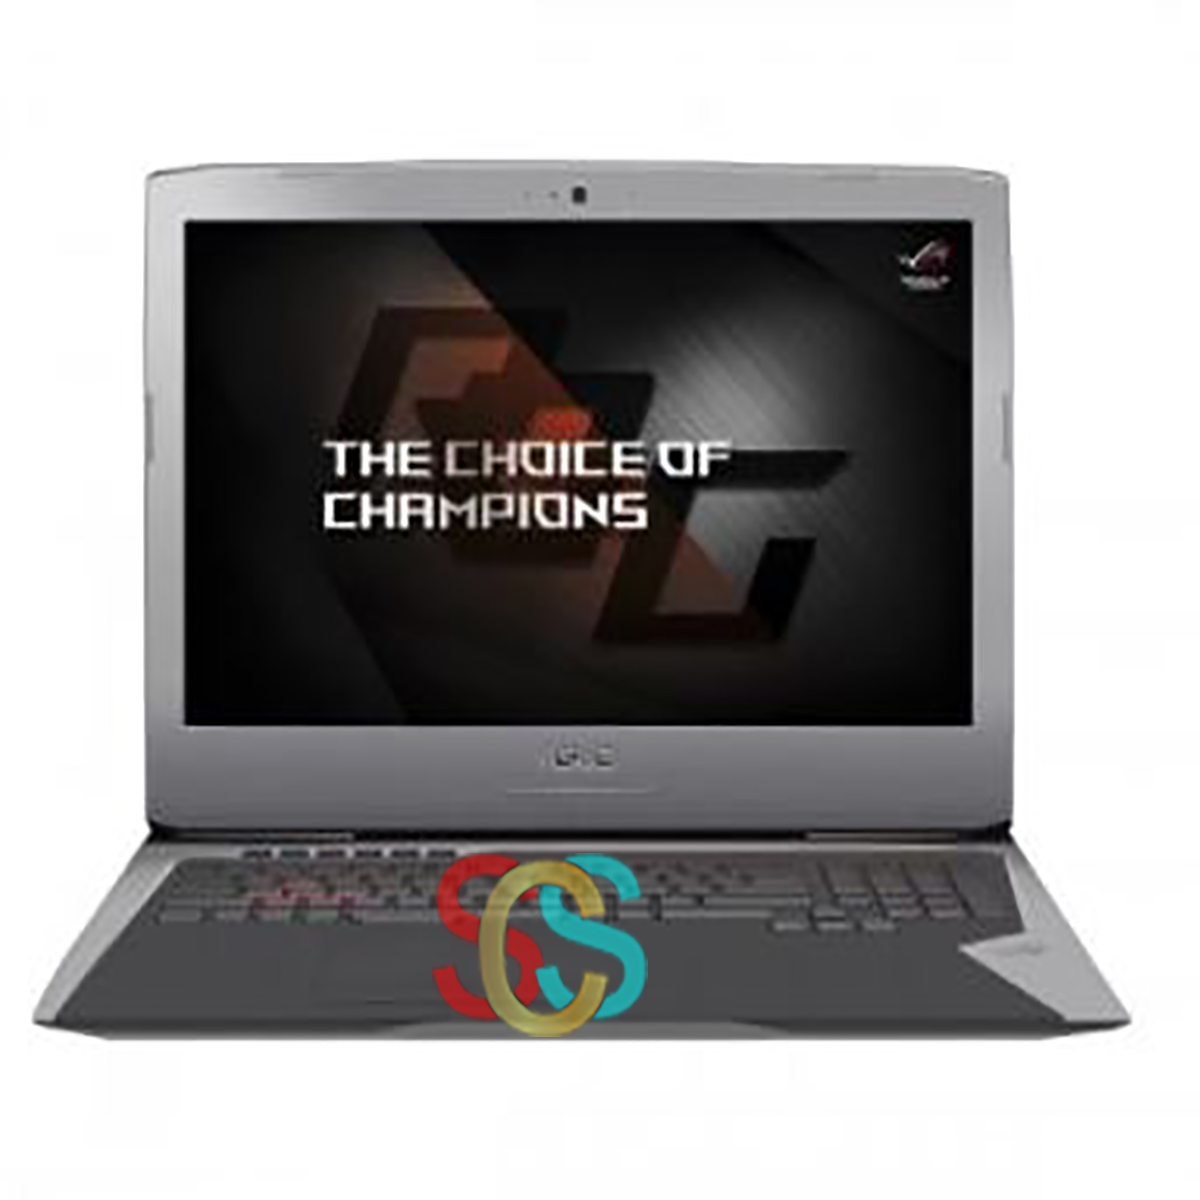 Asus ROG G752VY Core i7 6th Gen. 6700HQ